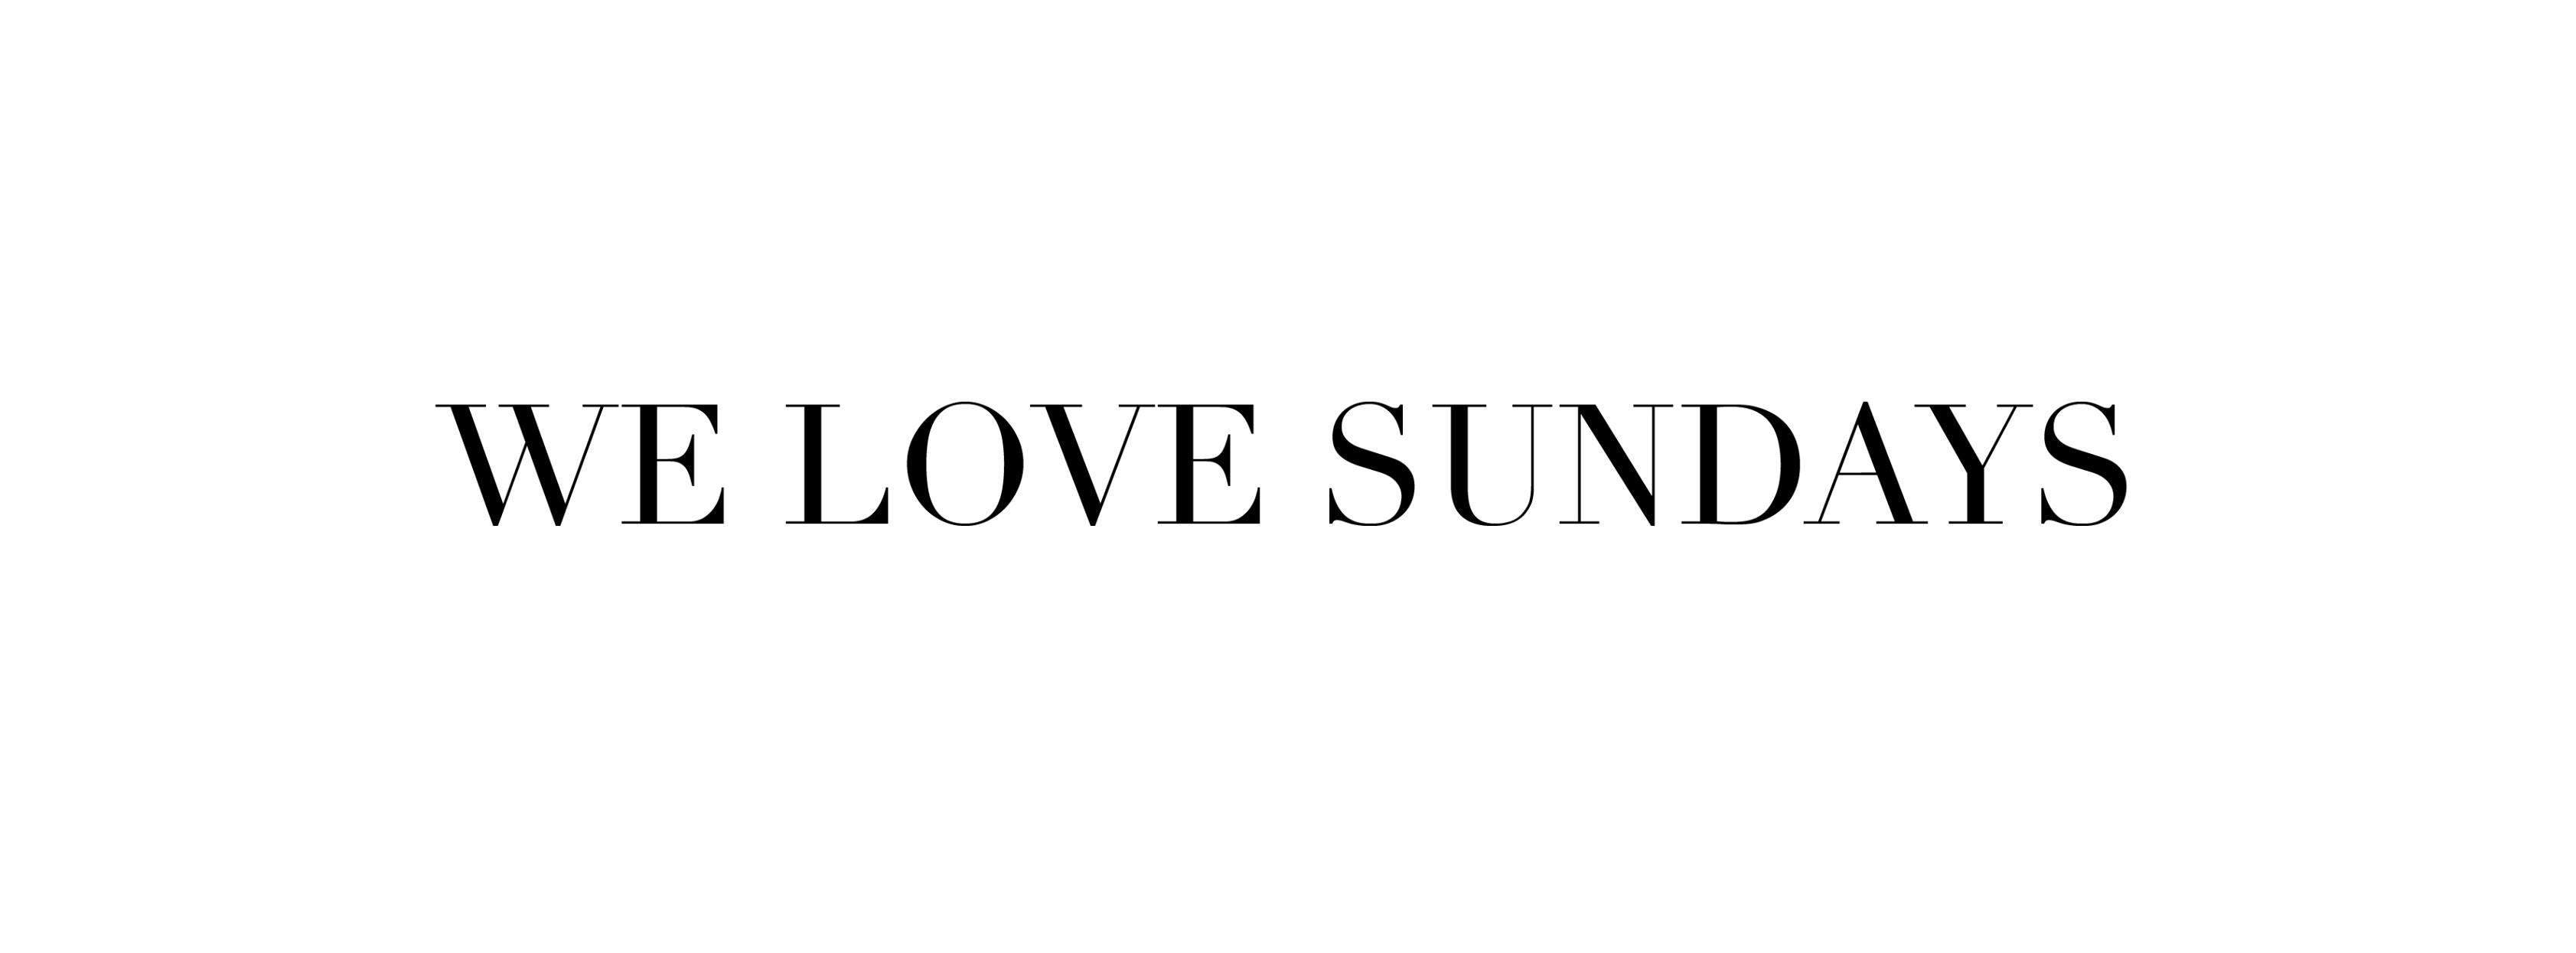 We love sundays